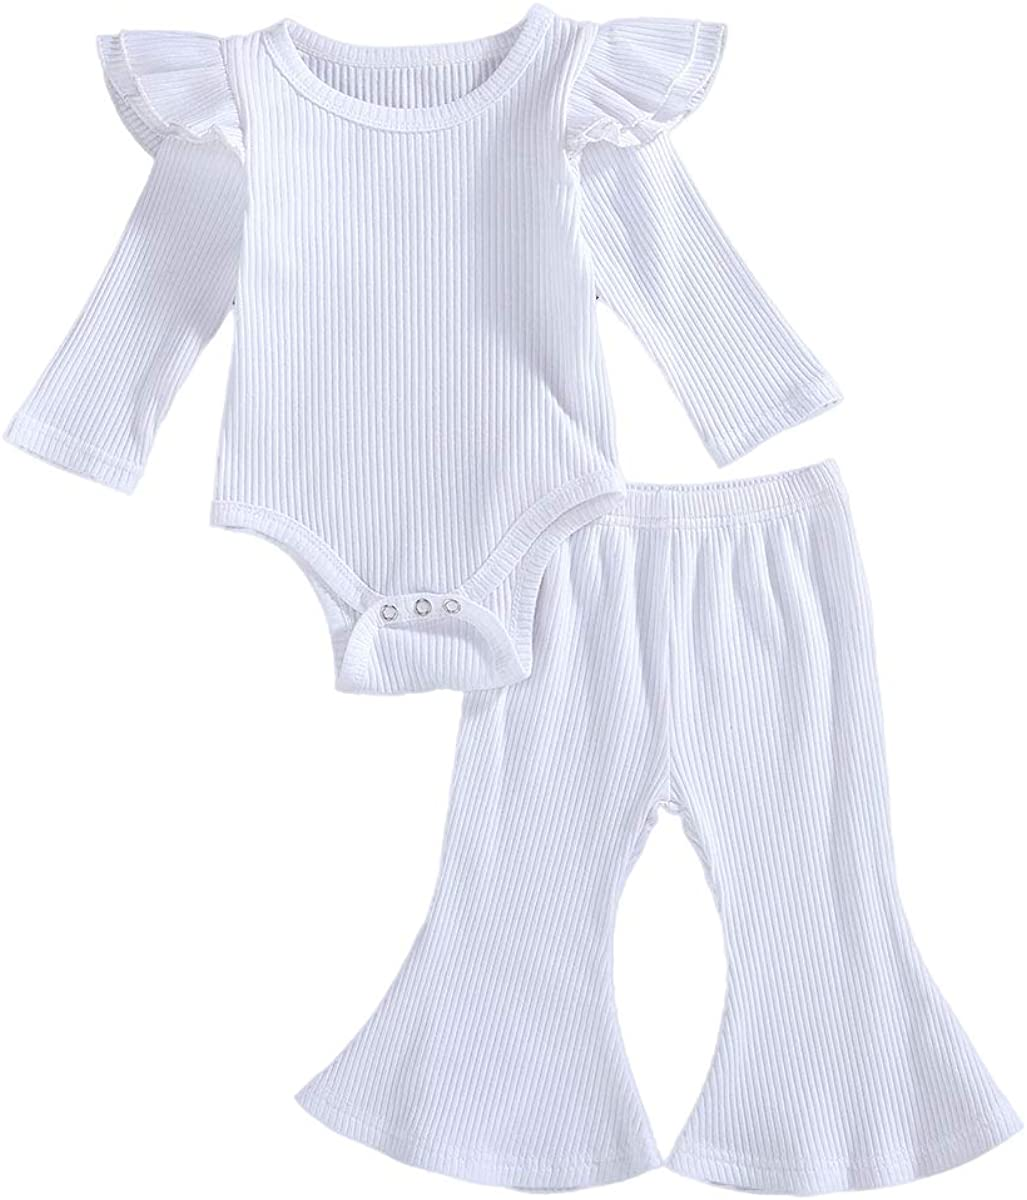 2Pcs Infant Baby Girl Fall Outfit,Long Sleeve Ruffle Romper + Bell Bottoms Kids Pants Cotton Clothes Set